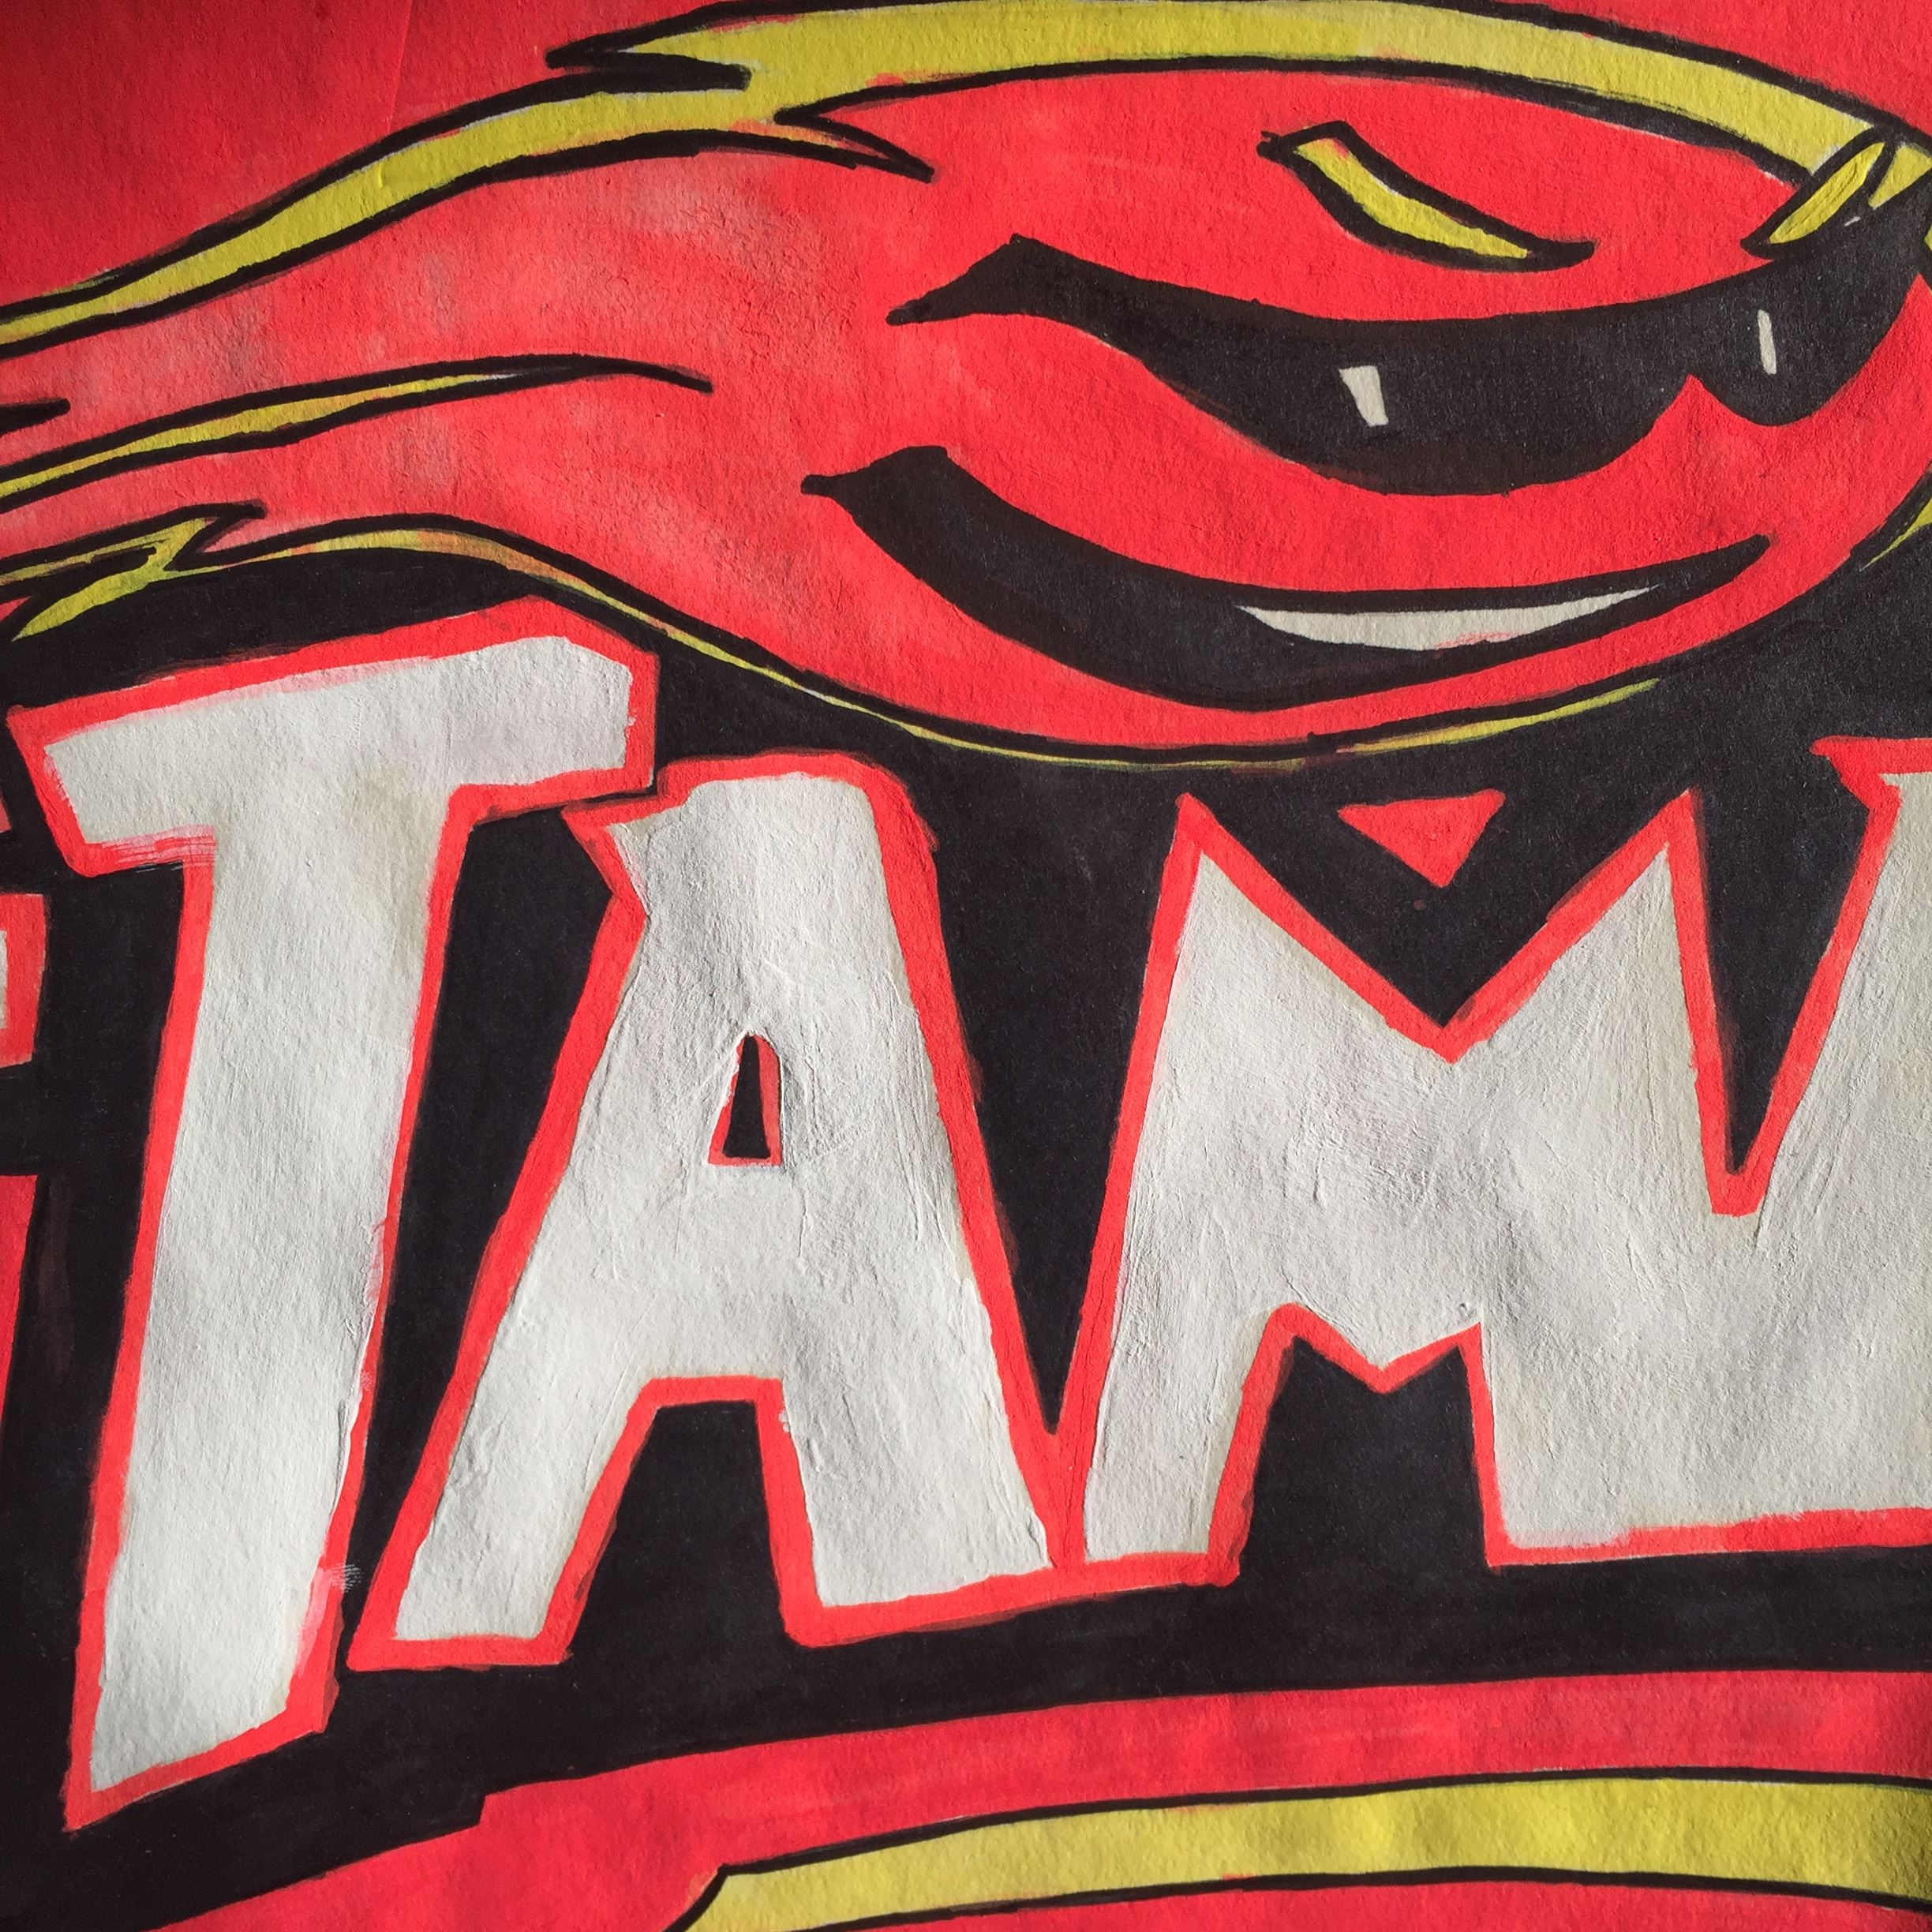 Red, black and white painting of the letters T.A.M